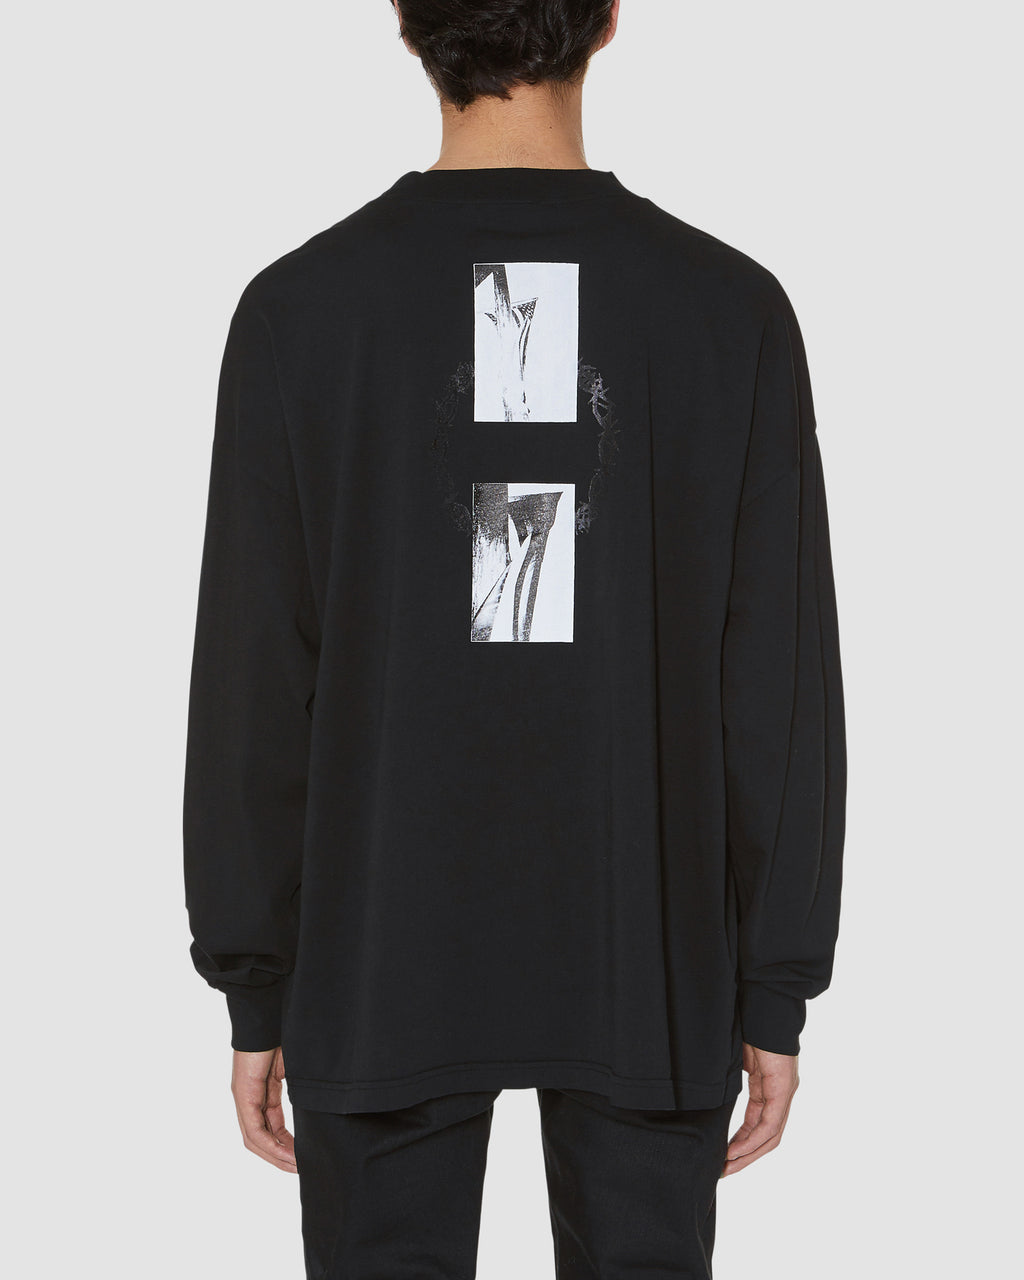 FLAG IN THORN L/S TEE